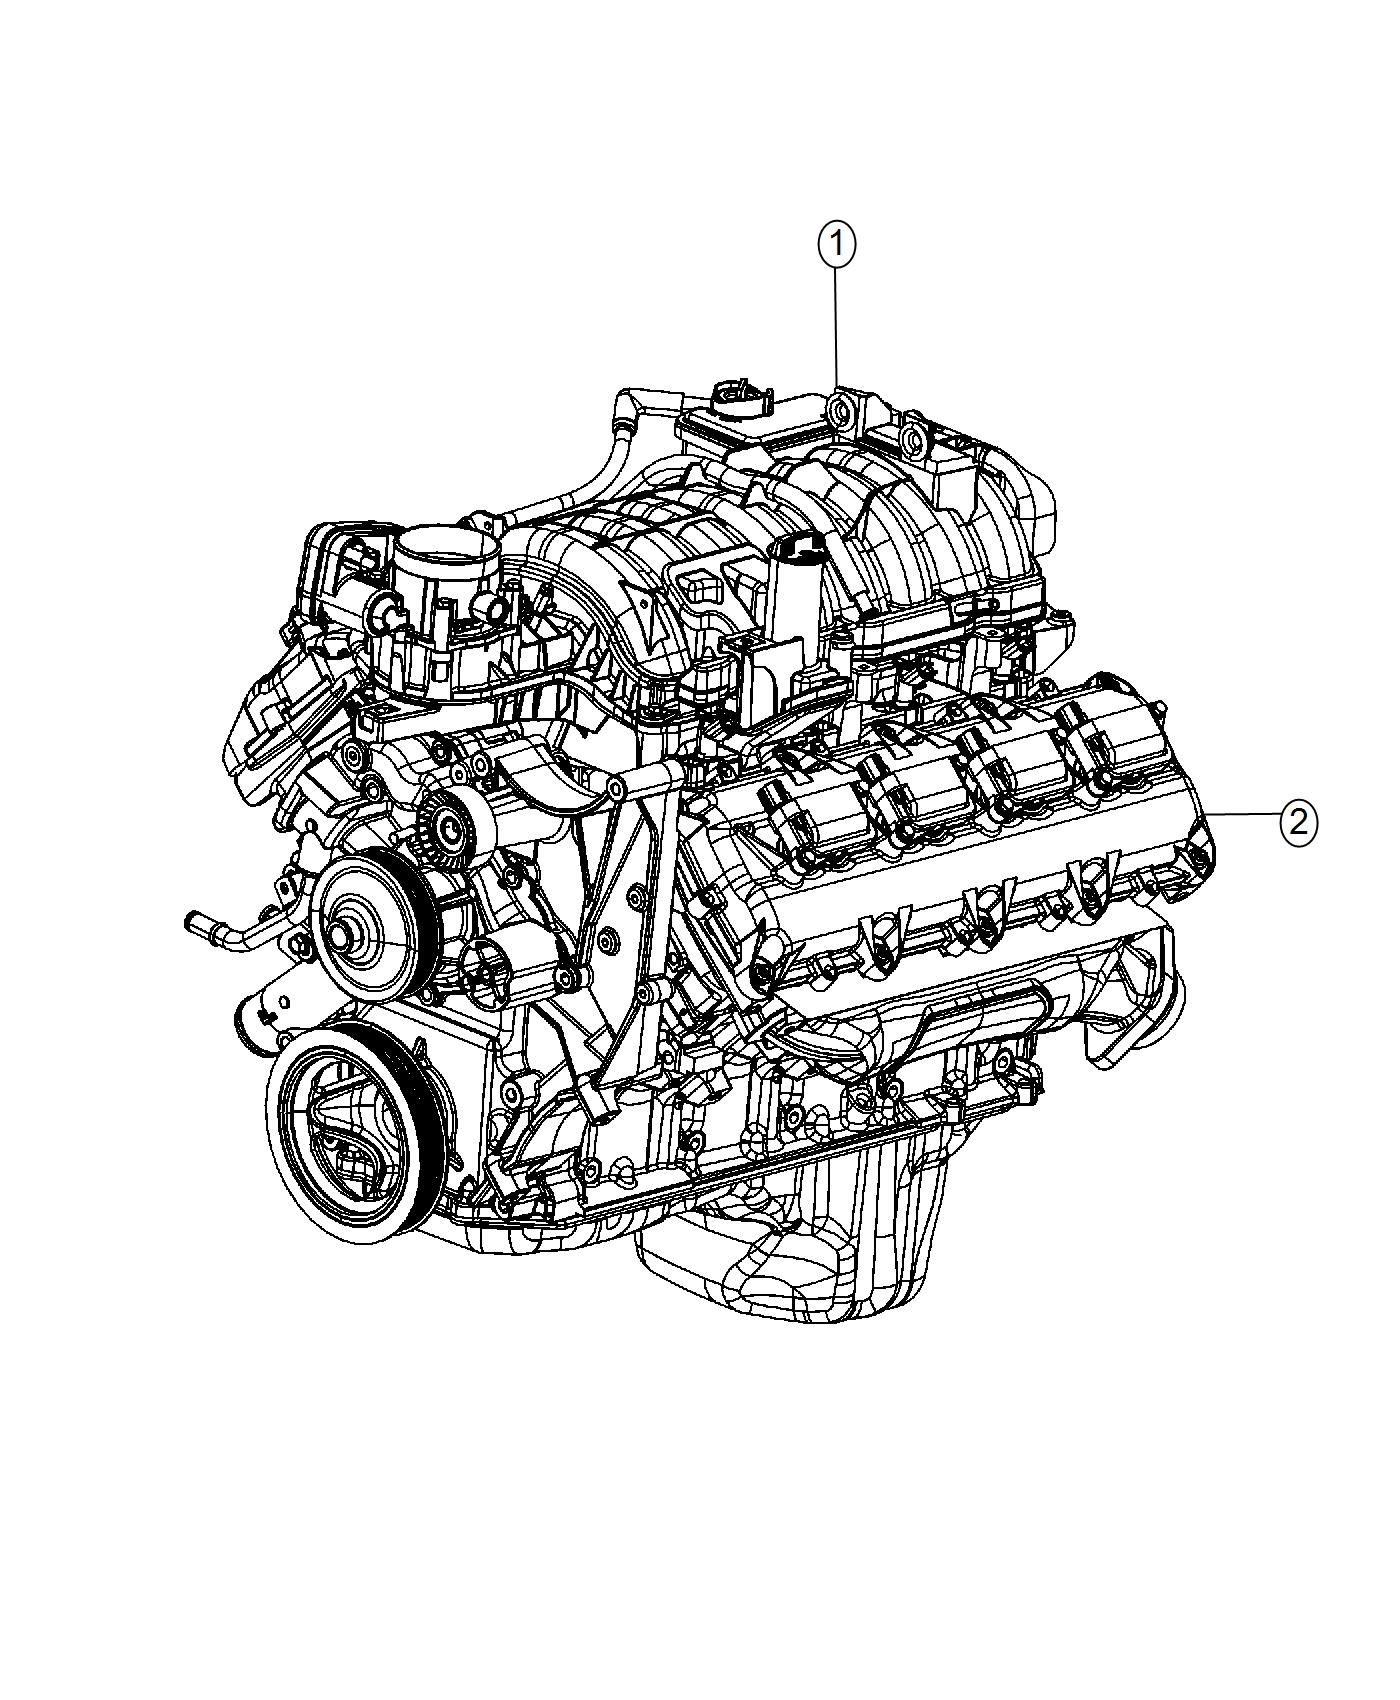 Ram Engine Long Block 5 Speed Manual Tr